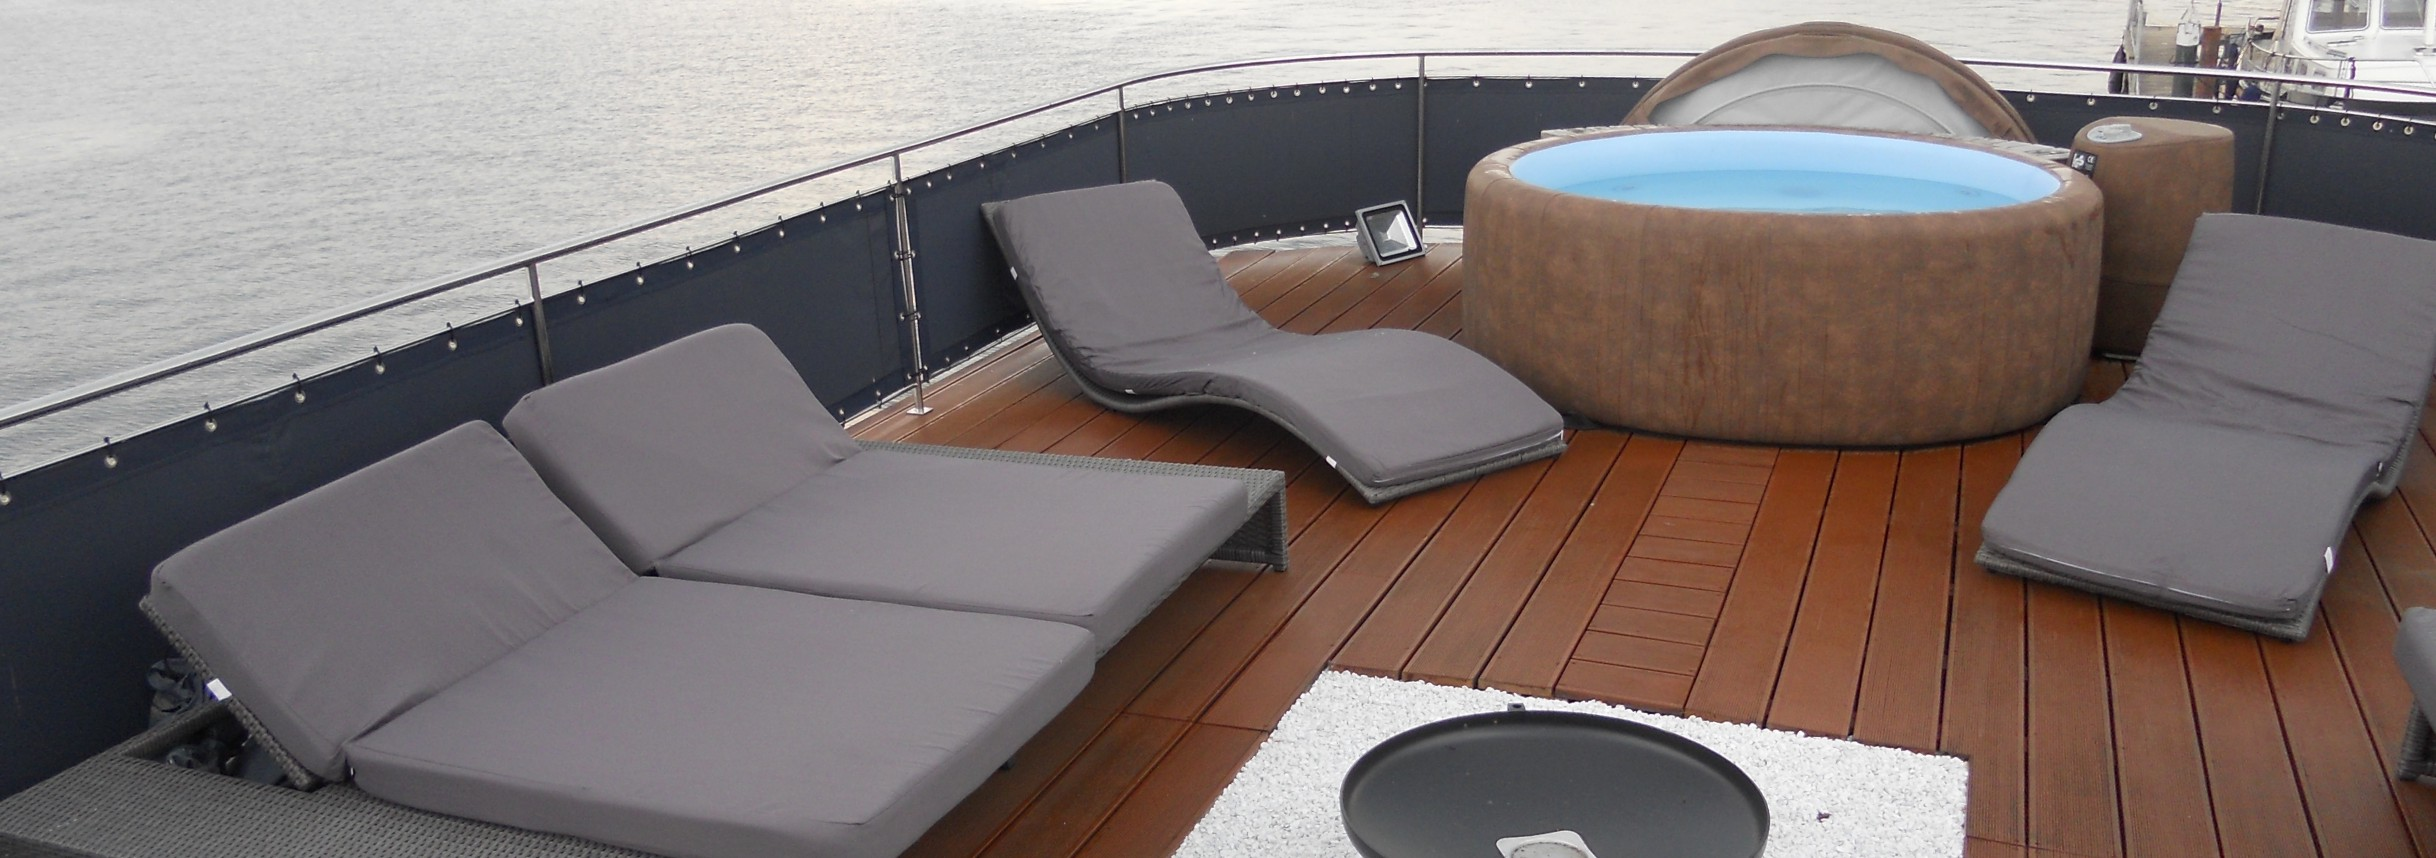 event hausboot mieten berlin schiff charter berlin. Black Bedroom Furniture Sets. Home Design Ideas